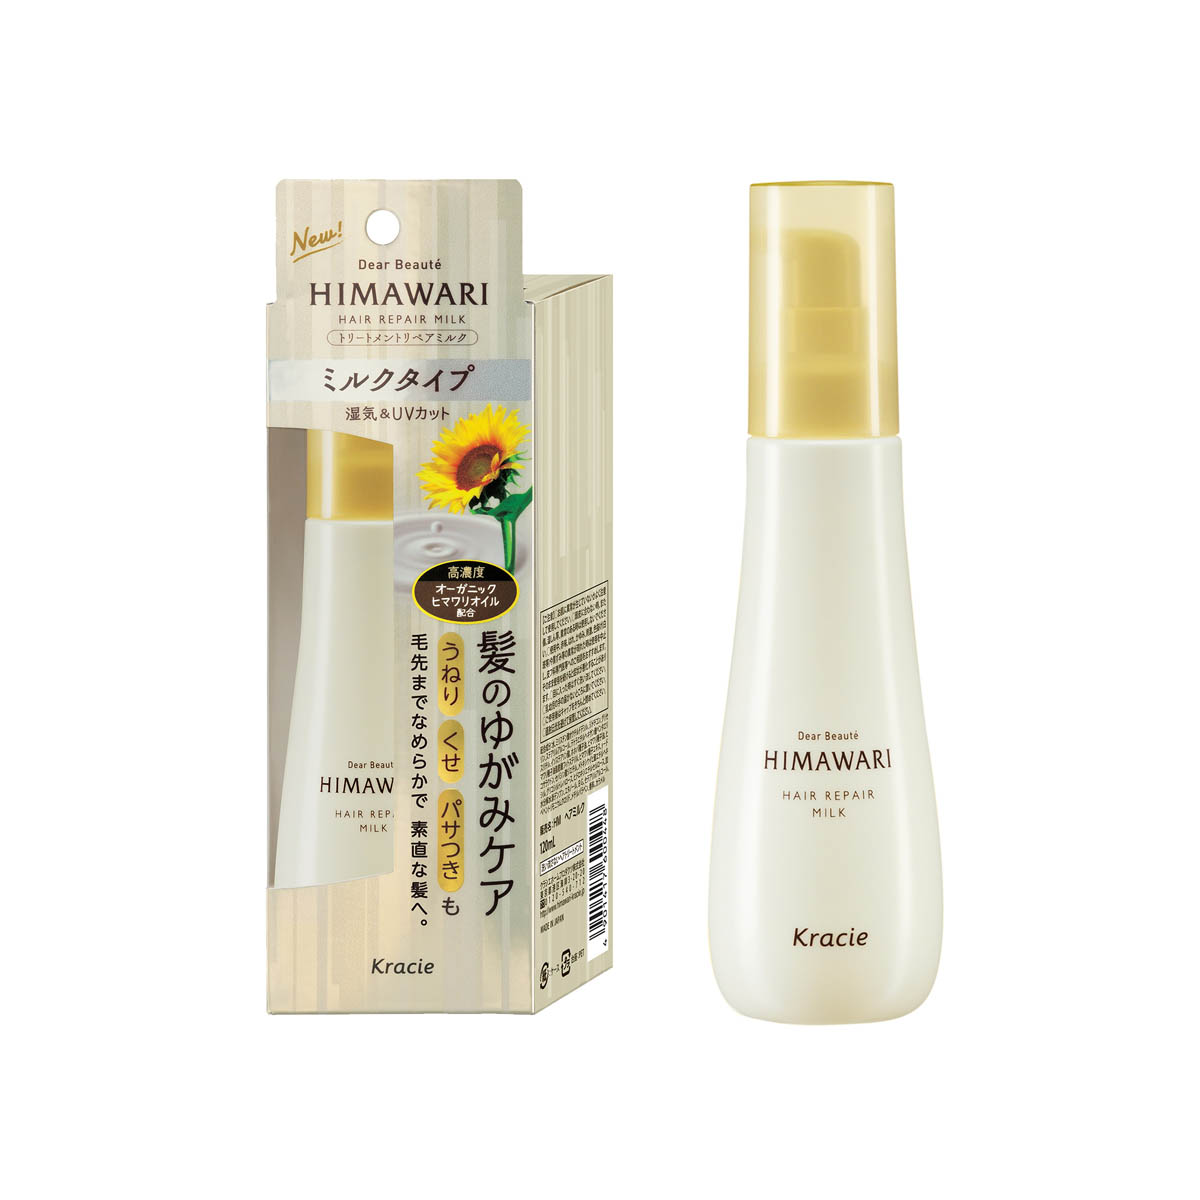 Himawari Hair Repair Milk